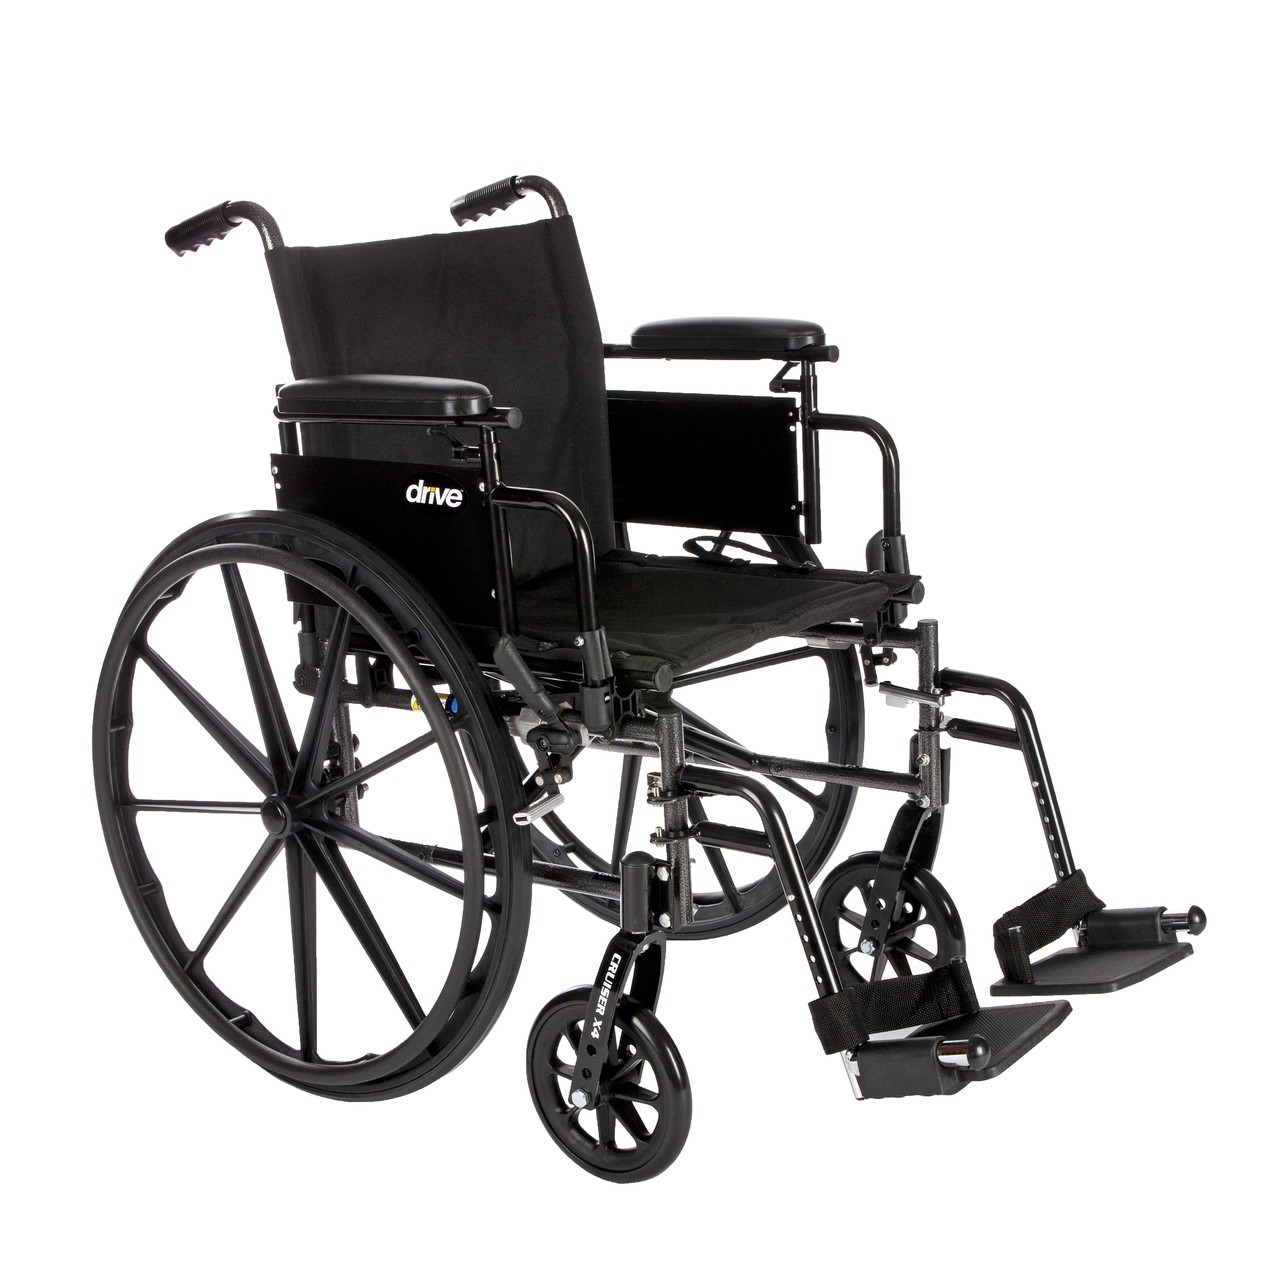 Drive Medical Wheelchair Parts All Wheelchair Brands